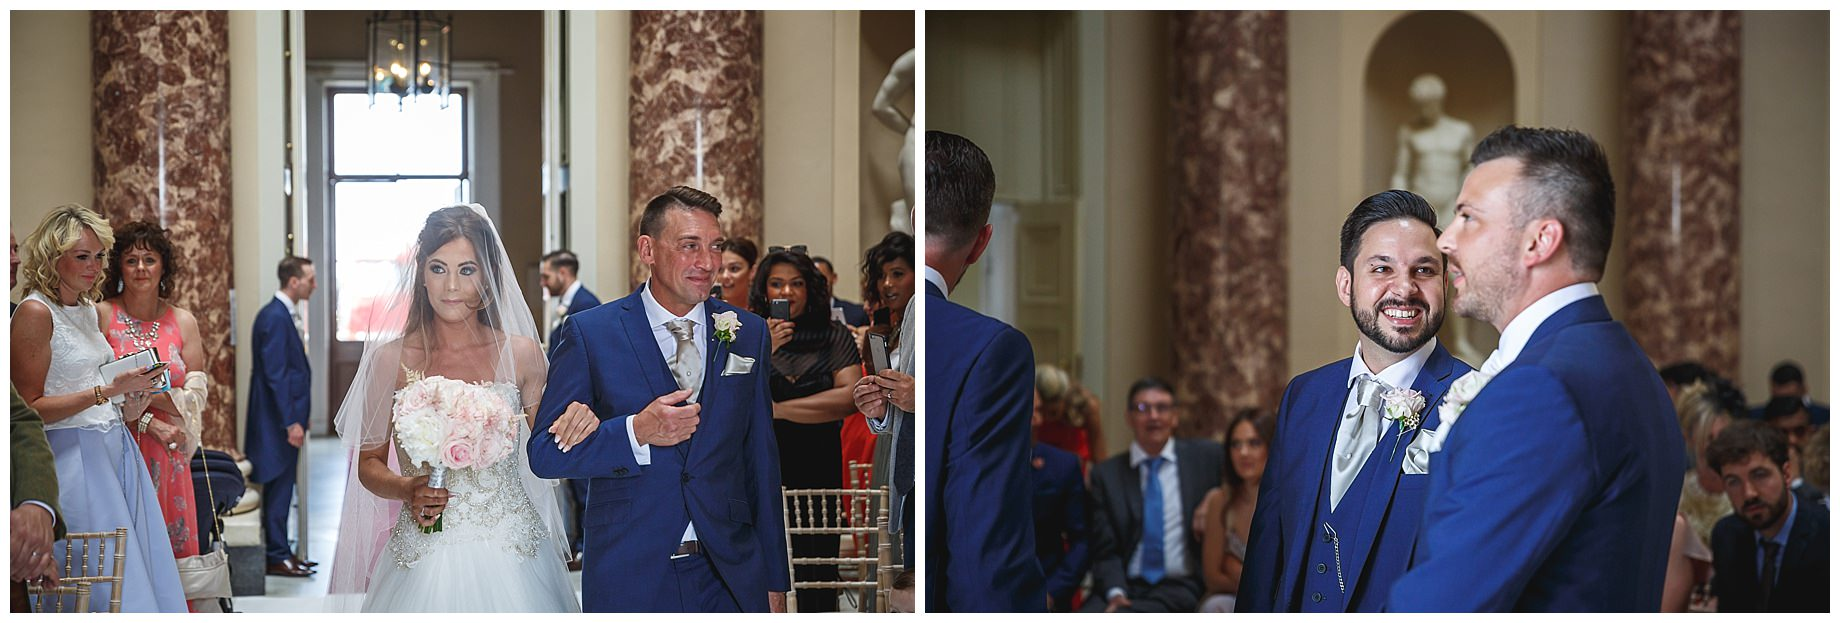 walking down the aisle at Stowe House Wedding